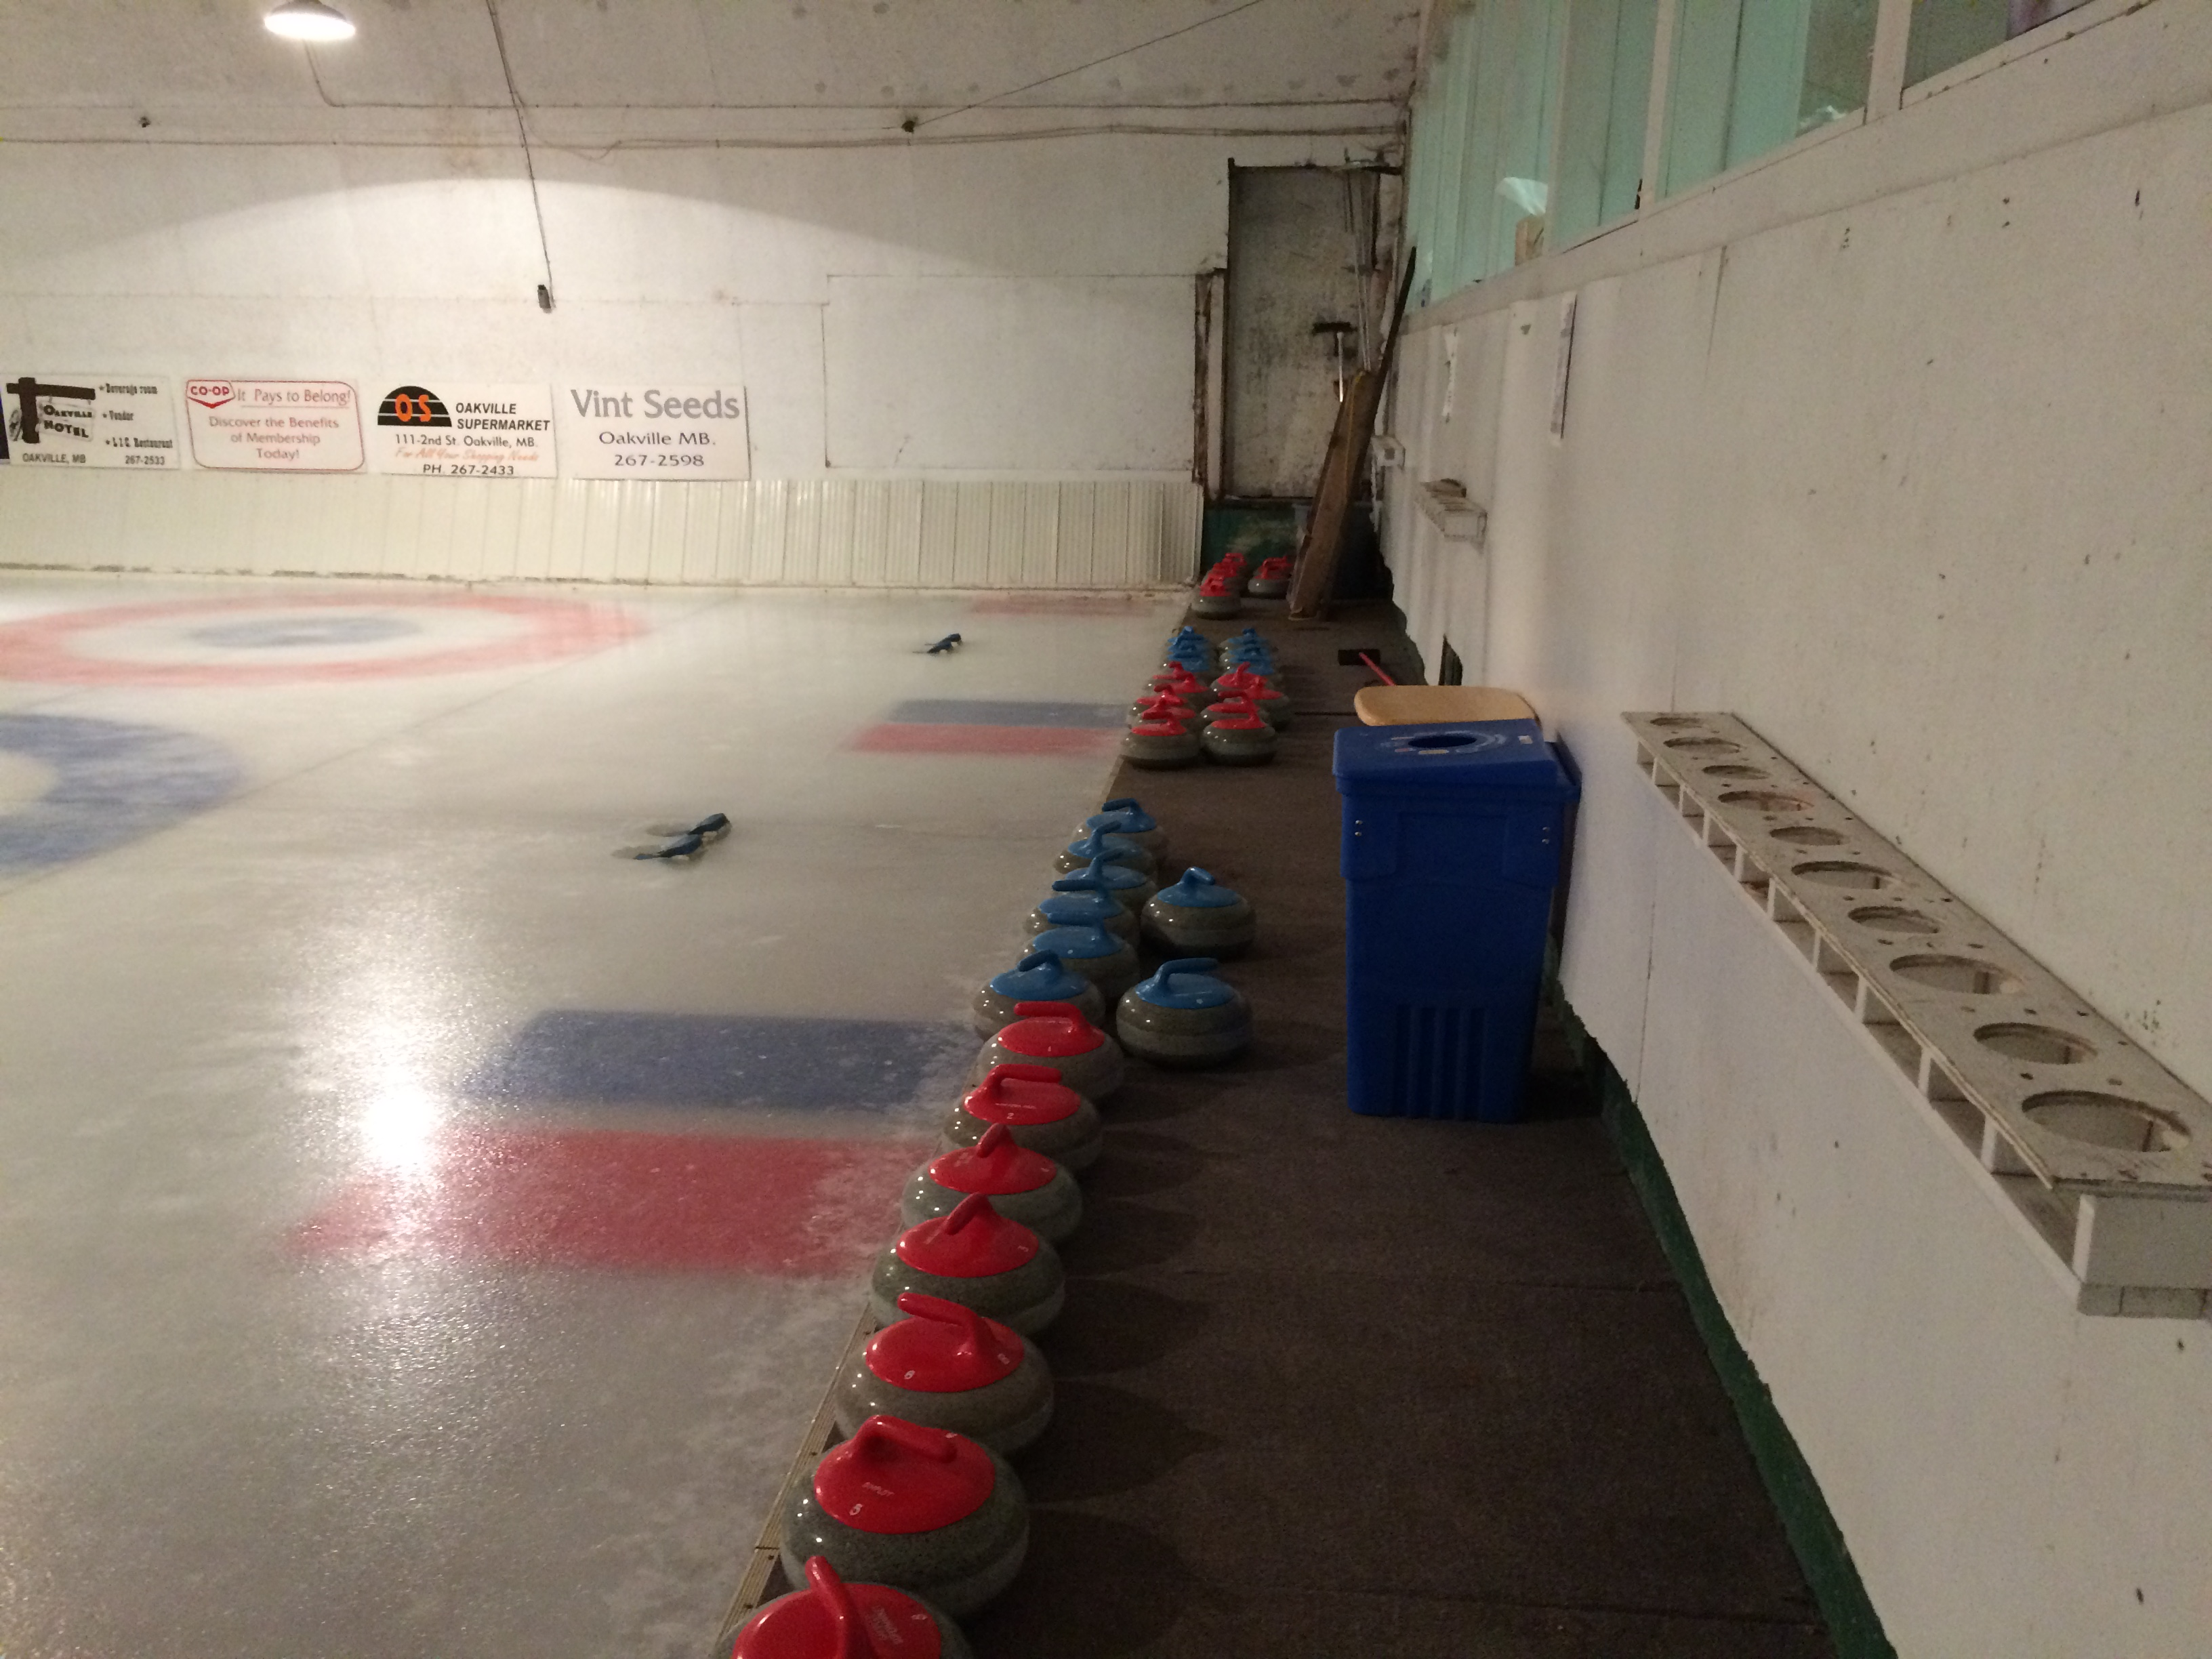 Curling rocks lined up at the rink